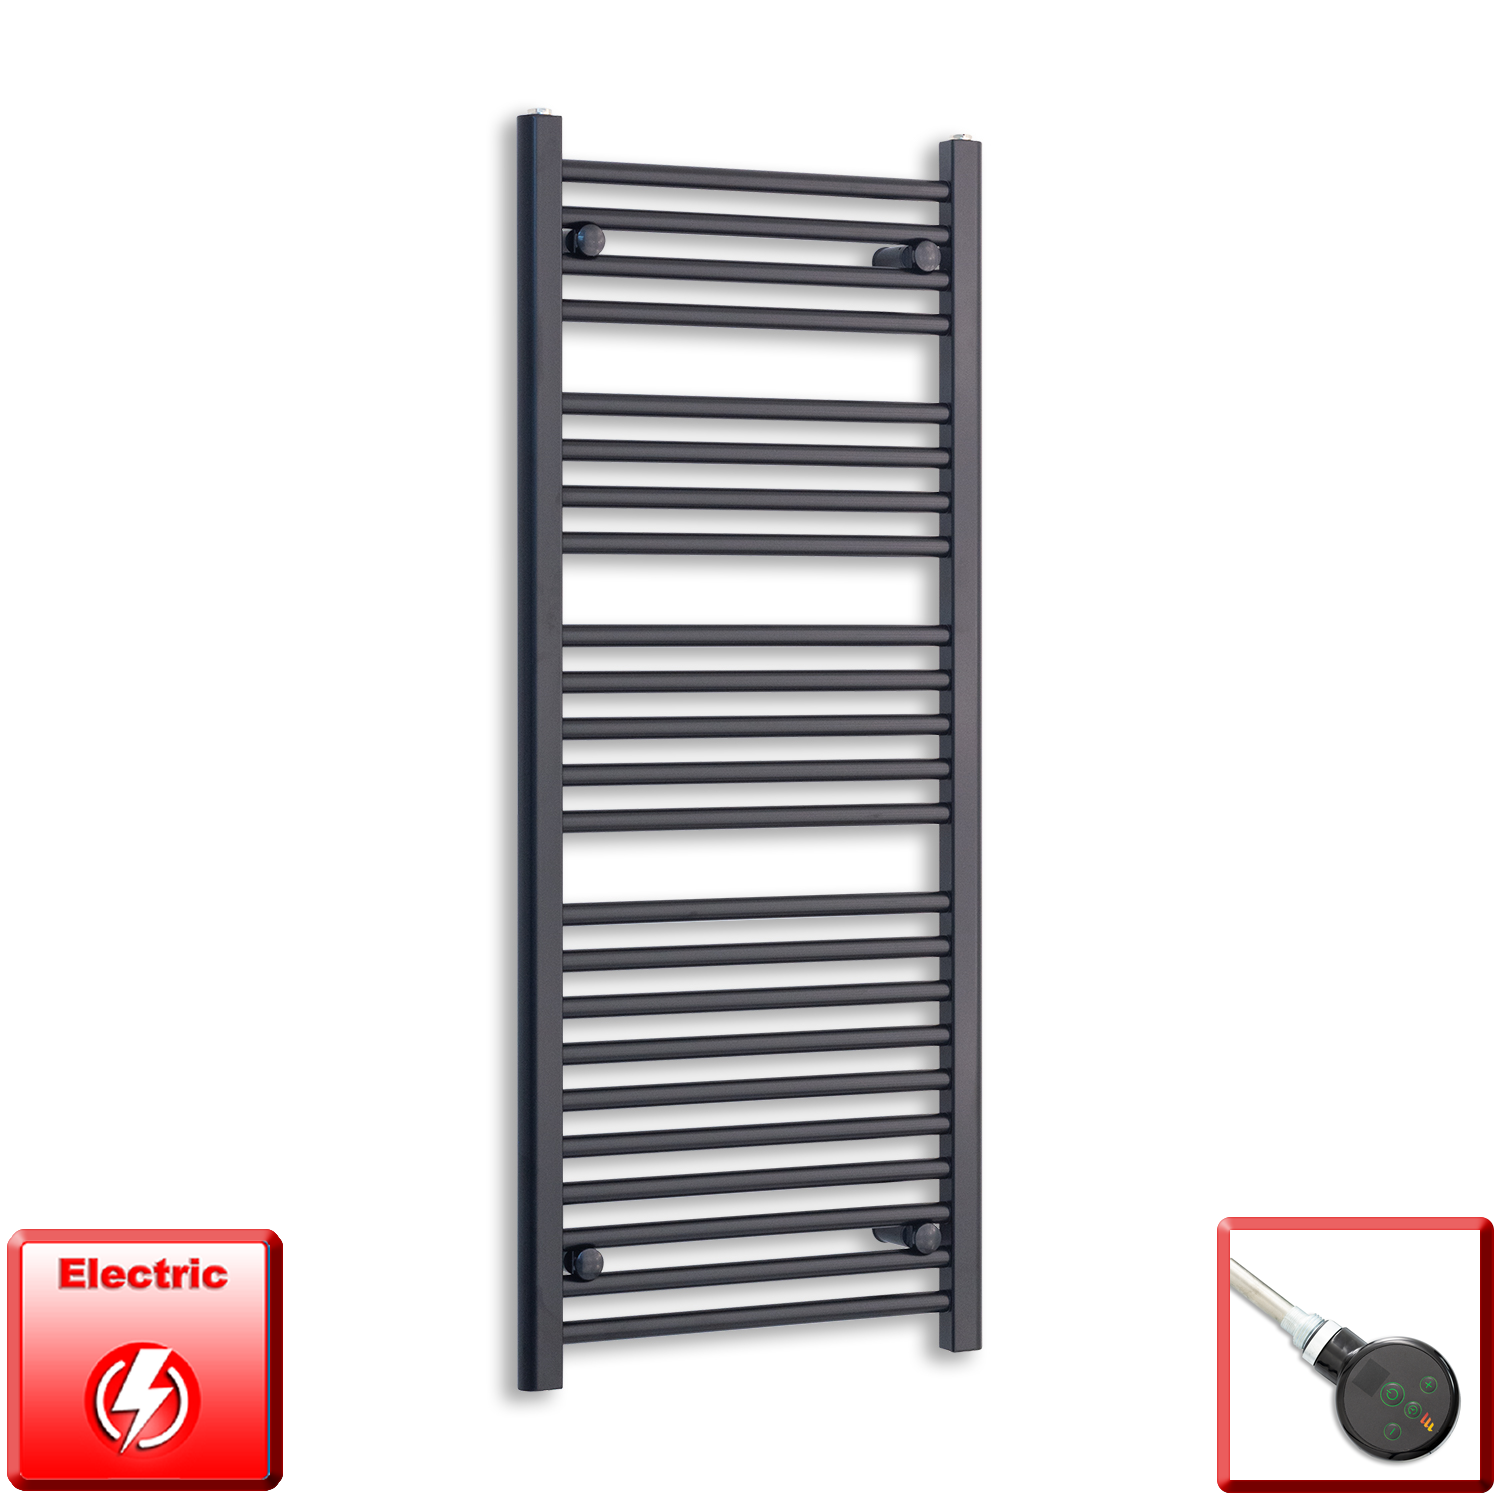 450mm Wide 1200mm High Flat Black Pre-Filled Electric Heated Towel Rail Radiator HTR,DIGI Thermostatic